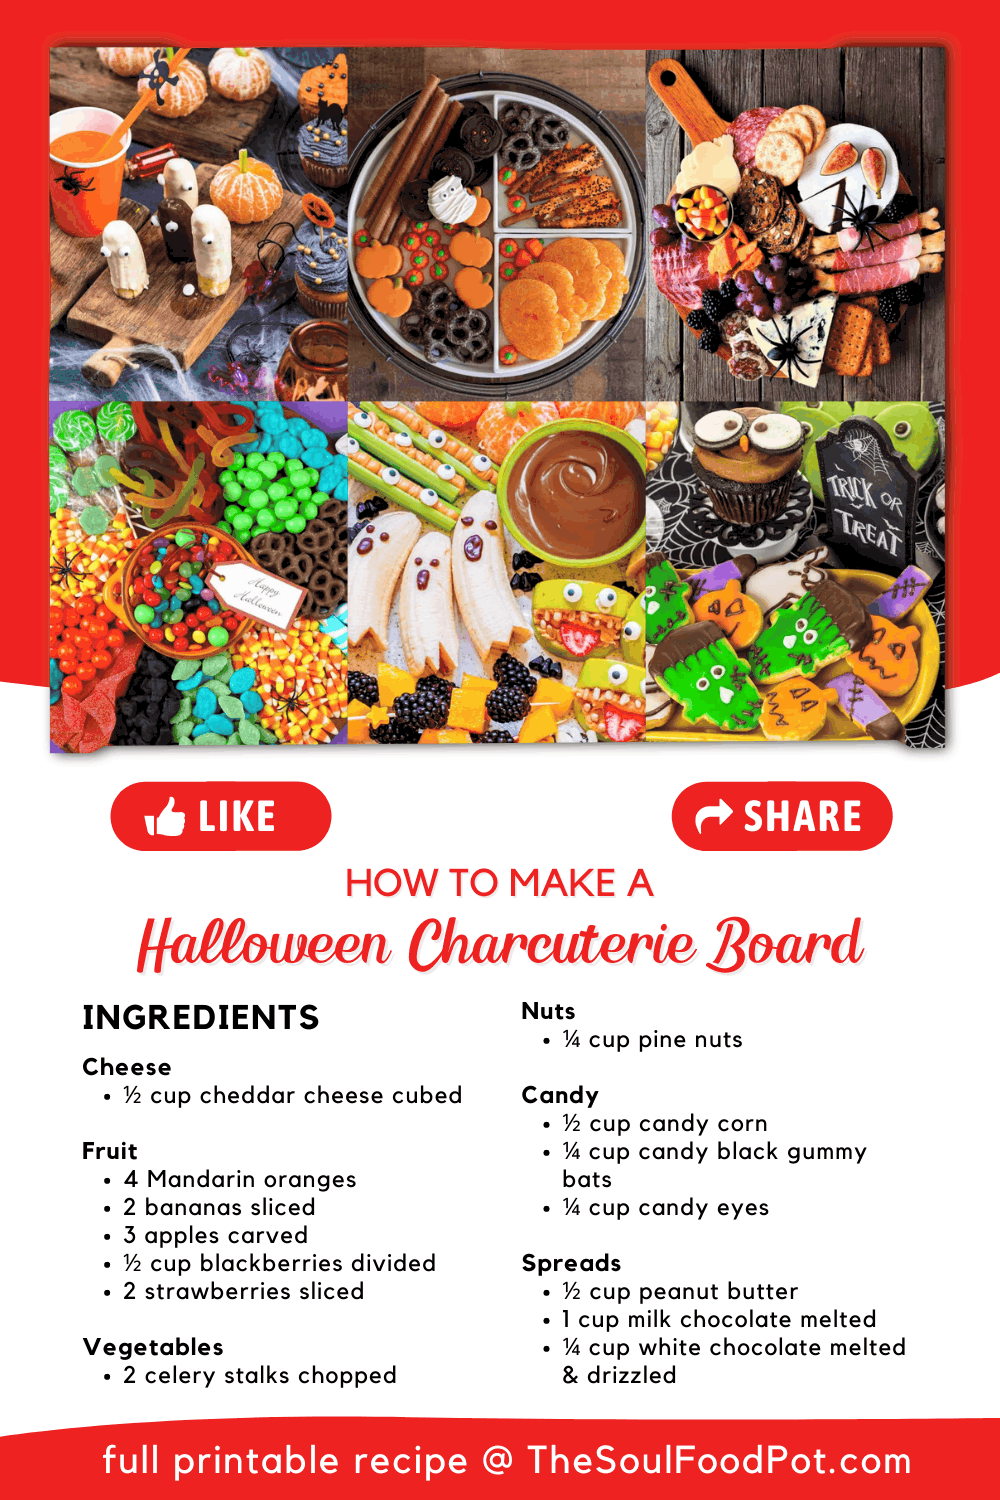 How To Make A Halloween Charcuterie Board Instructions